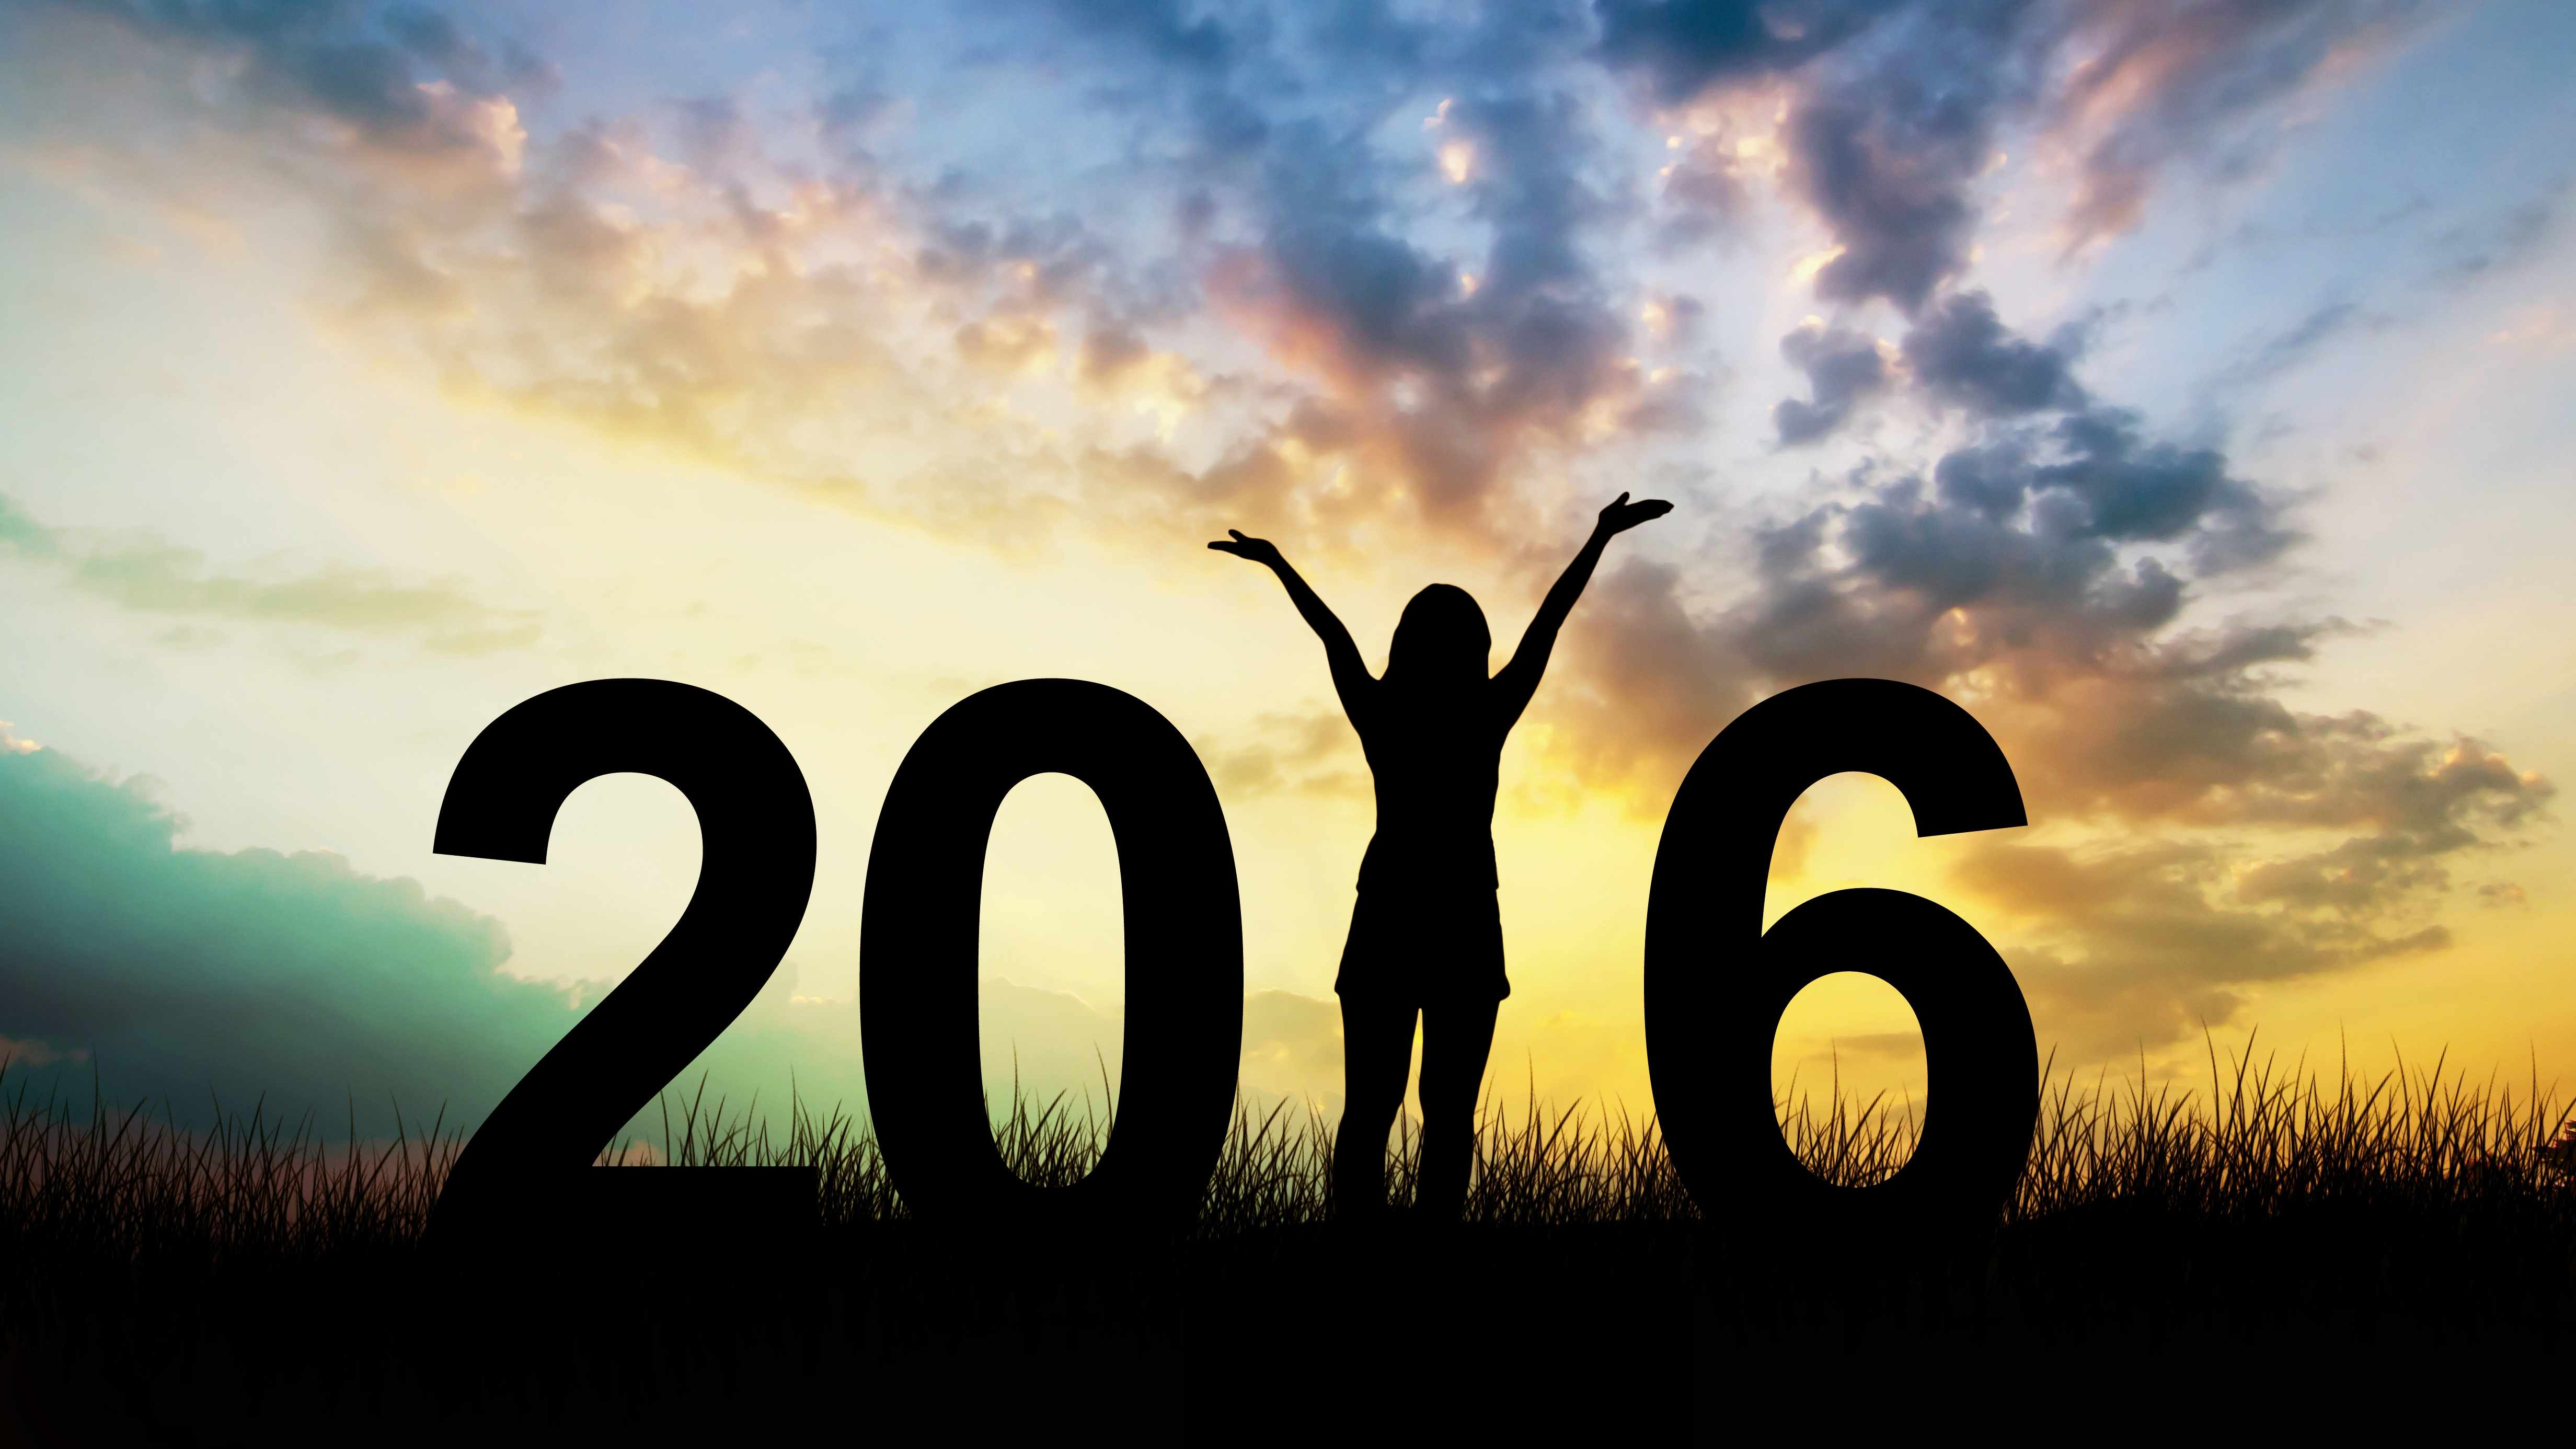 23 things i've learned so far in 2016 additionally the woot list 2016 also folk alley's 10 favorite albums of 2016 npr also 2016 scholarships fastweb as well 2016 in review best of 2016 technology in music education. on 2016